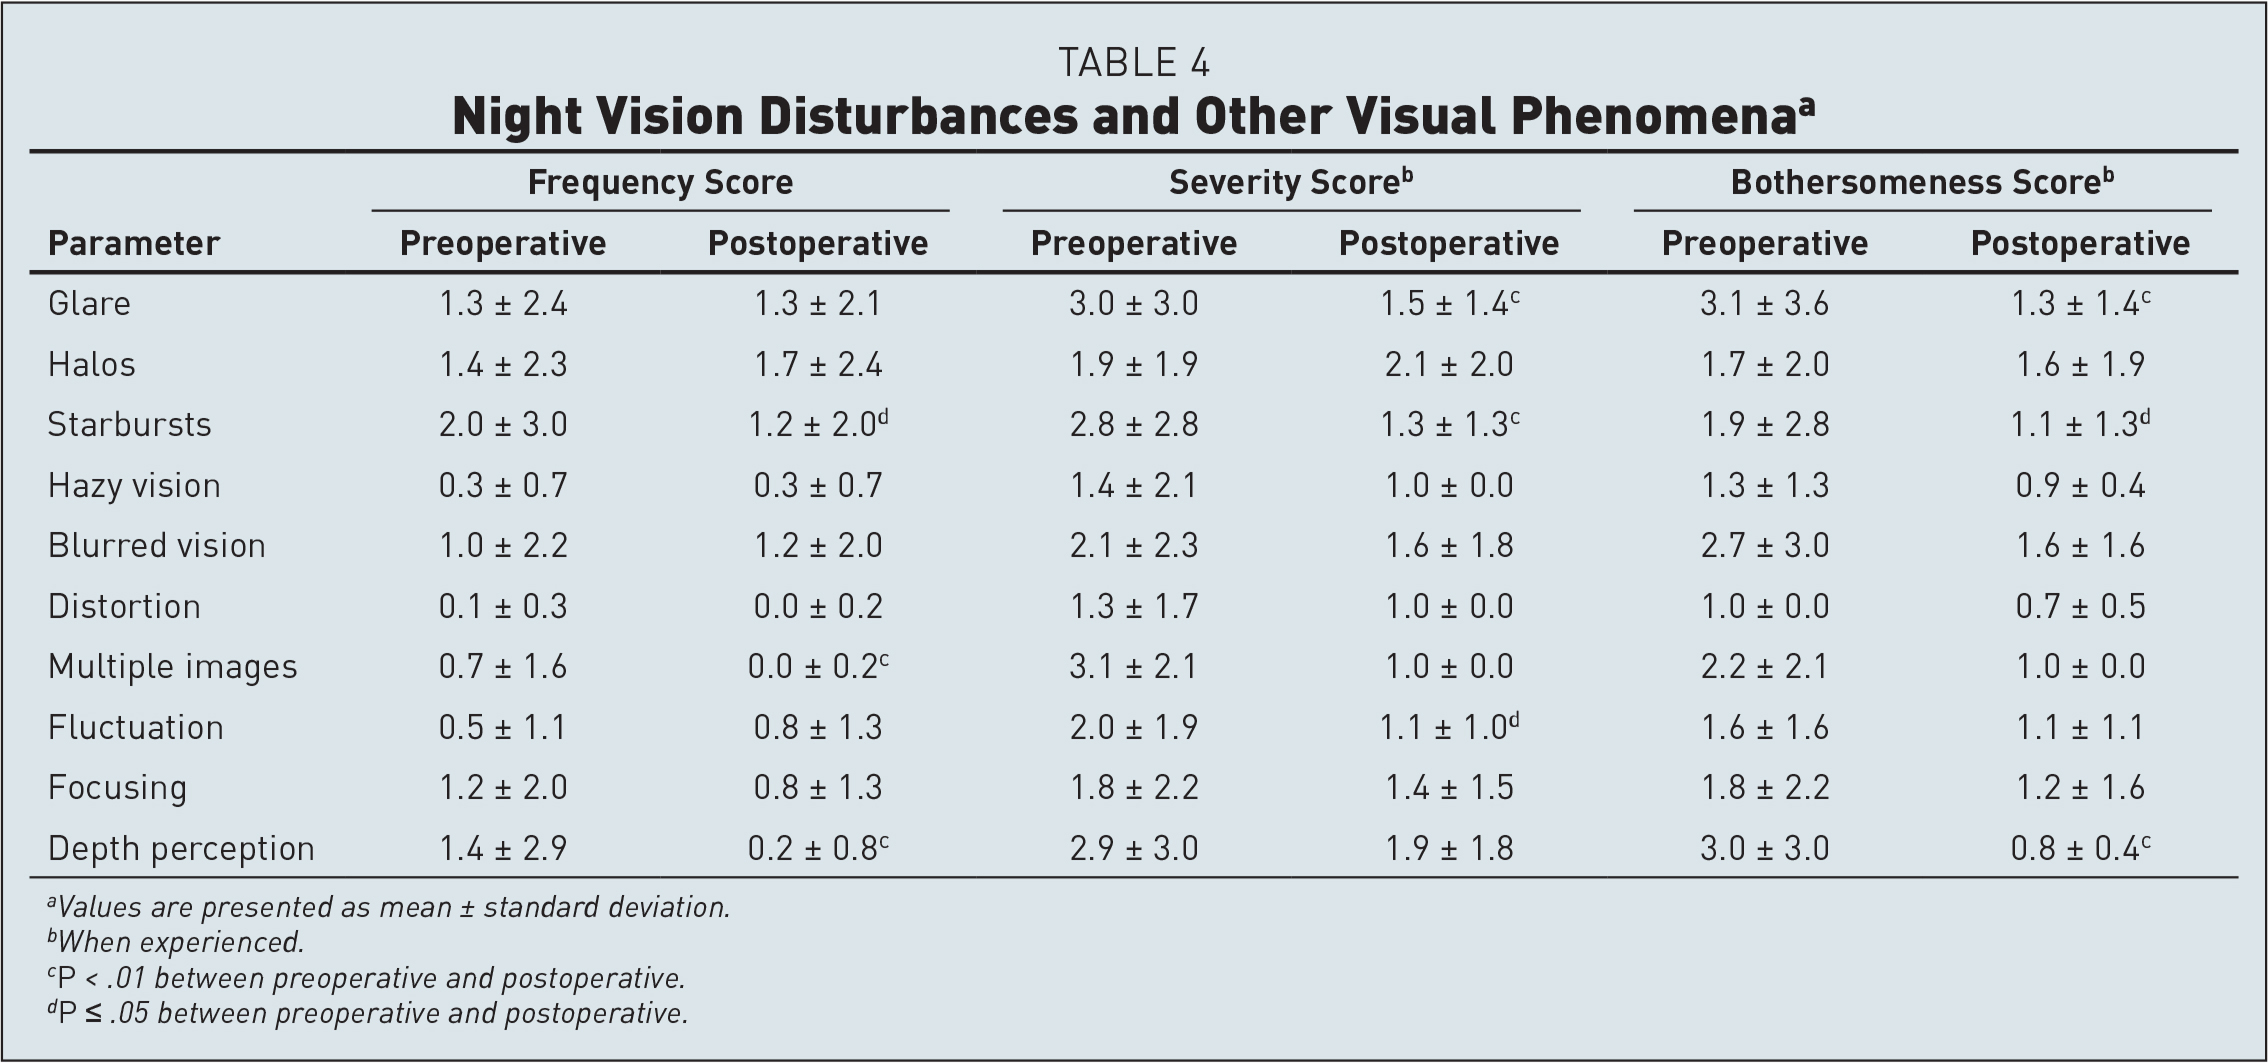 Night Vision Disturbances and Other Visual Phenomenaa